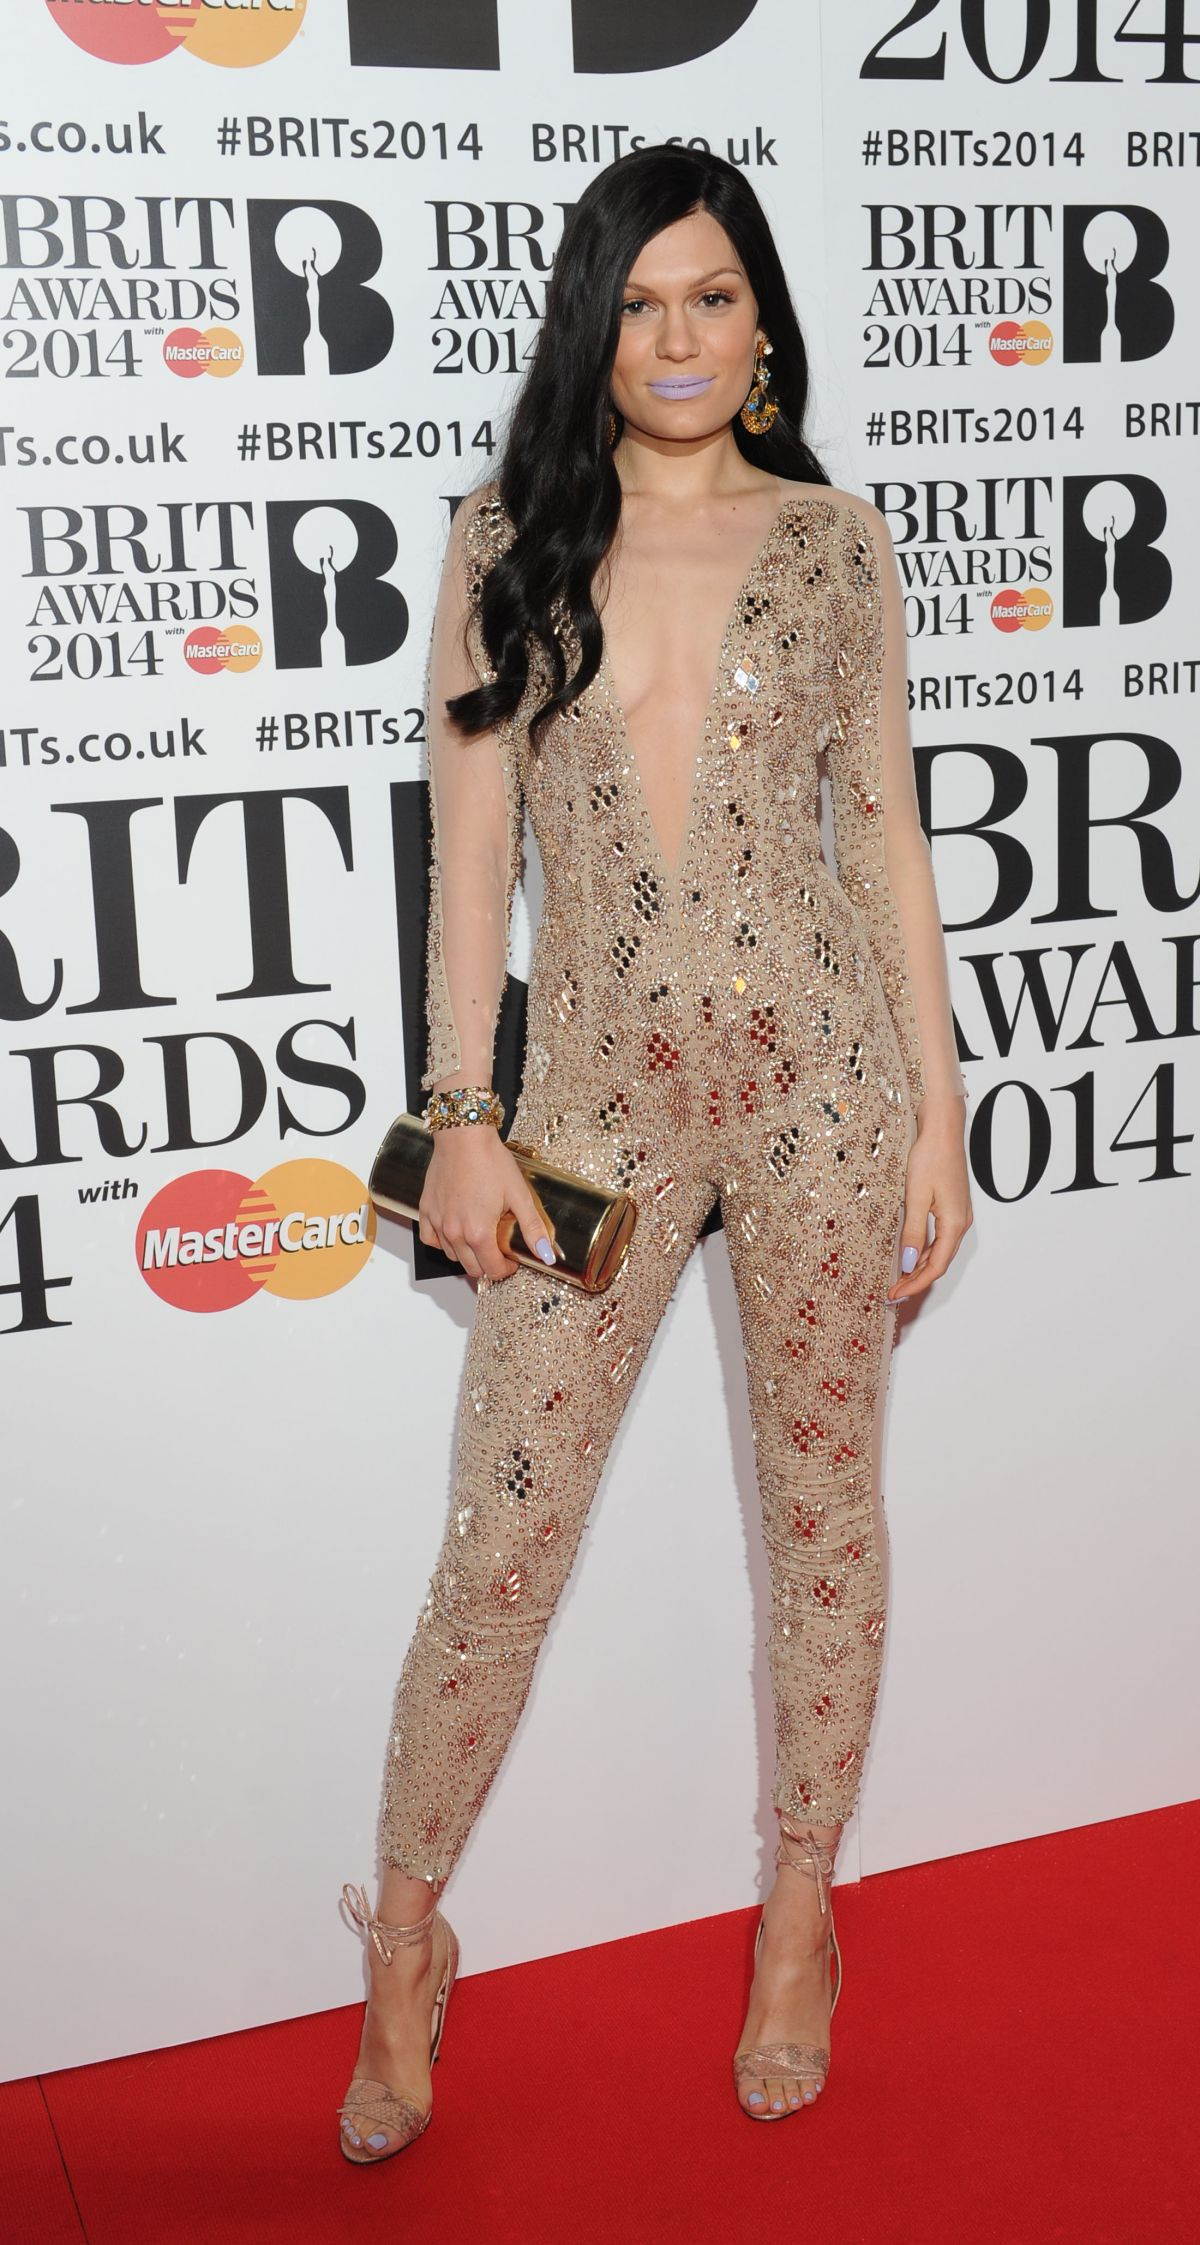 Jessie J At The BRIT Awards 2014 At The 02 Arena In London